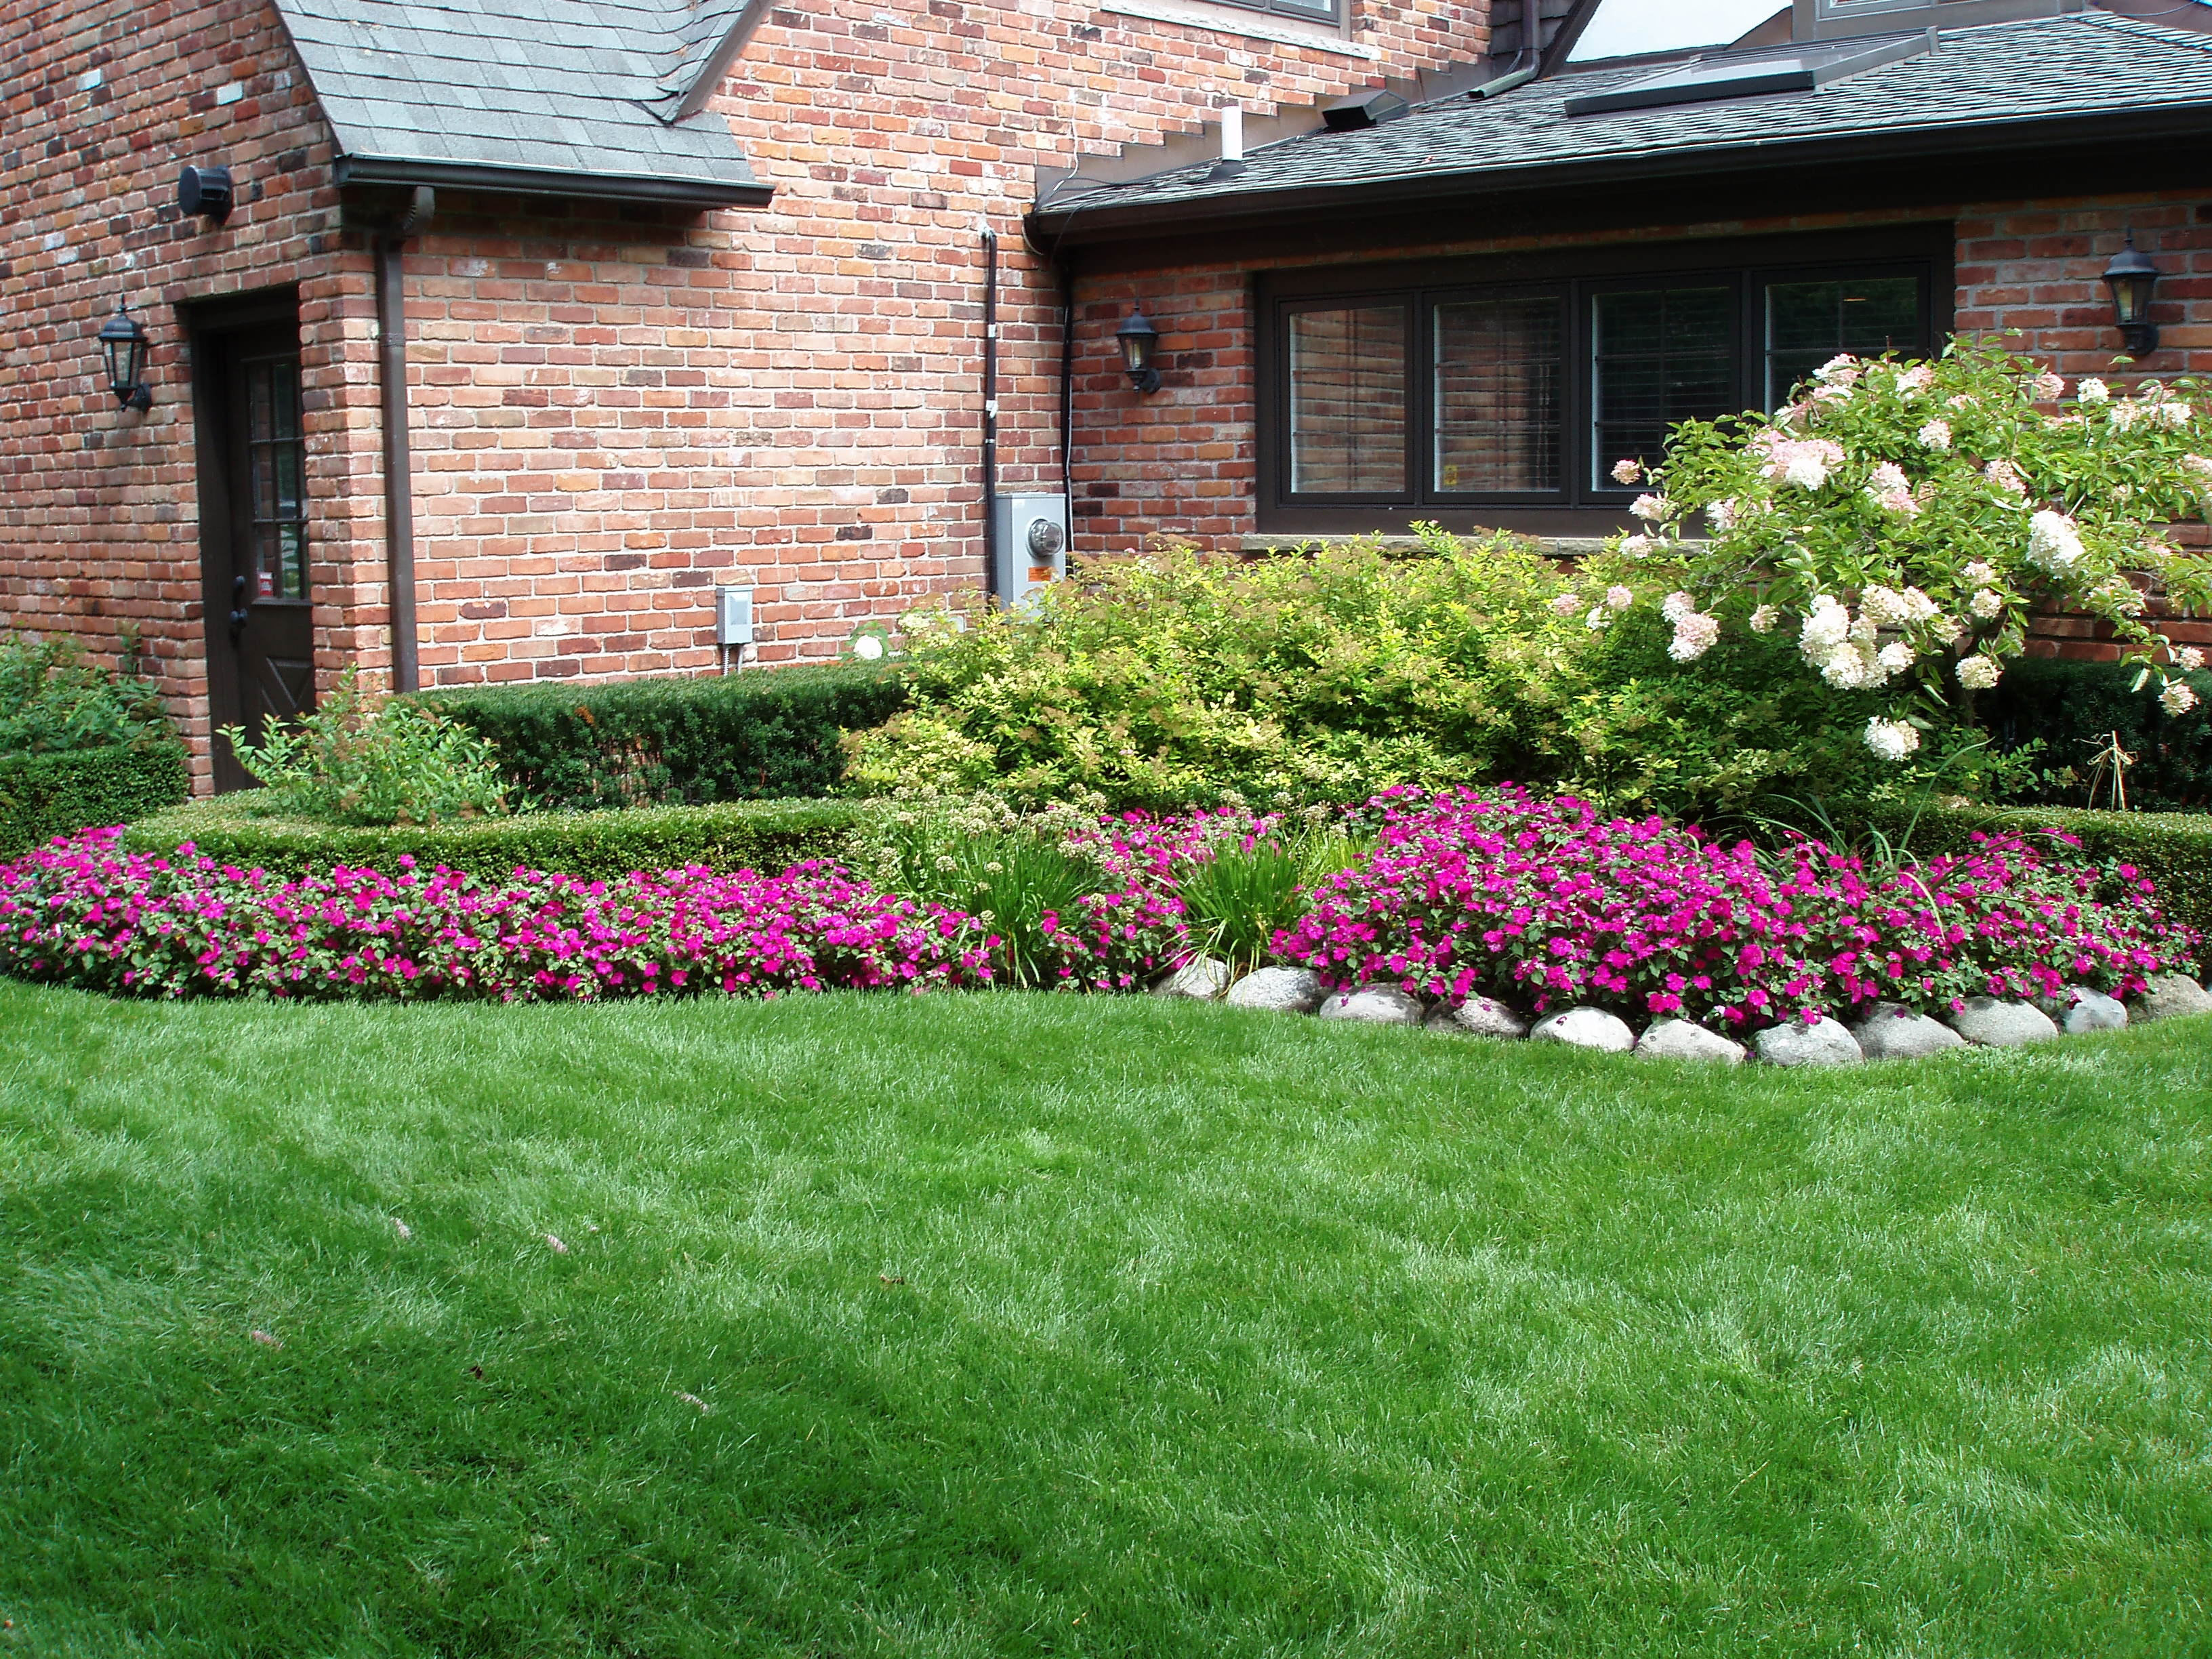 Landscaping total lawn care inc full lawn maintenance lawn landscaping and snow removal for Flower ideas for yard